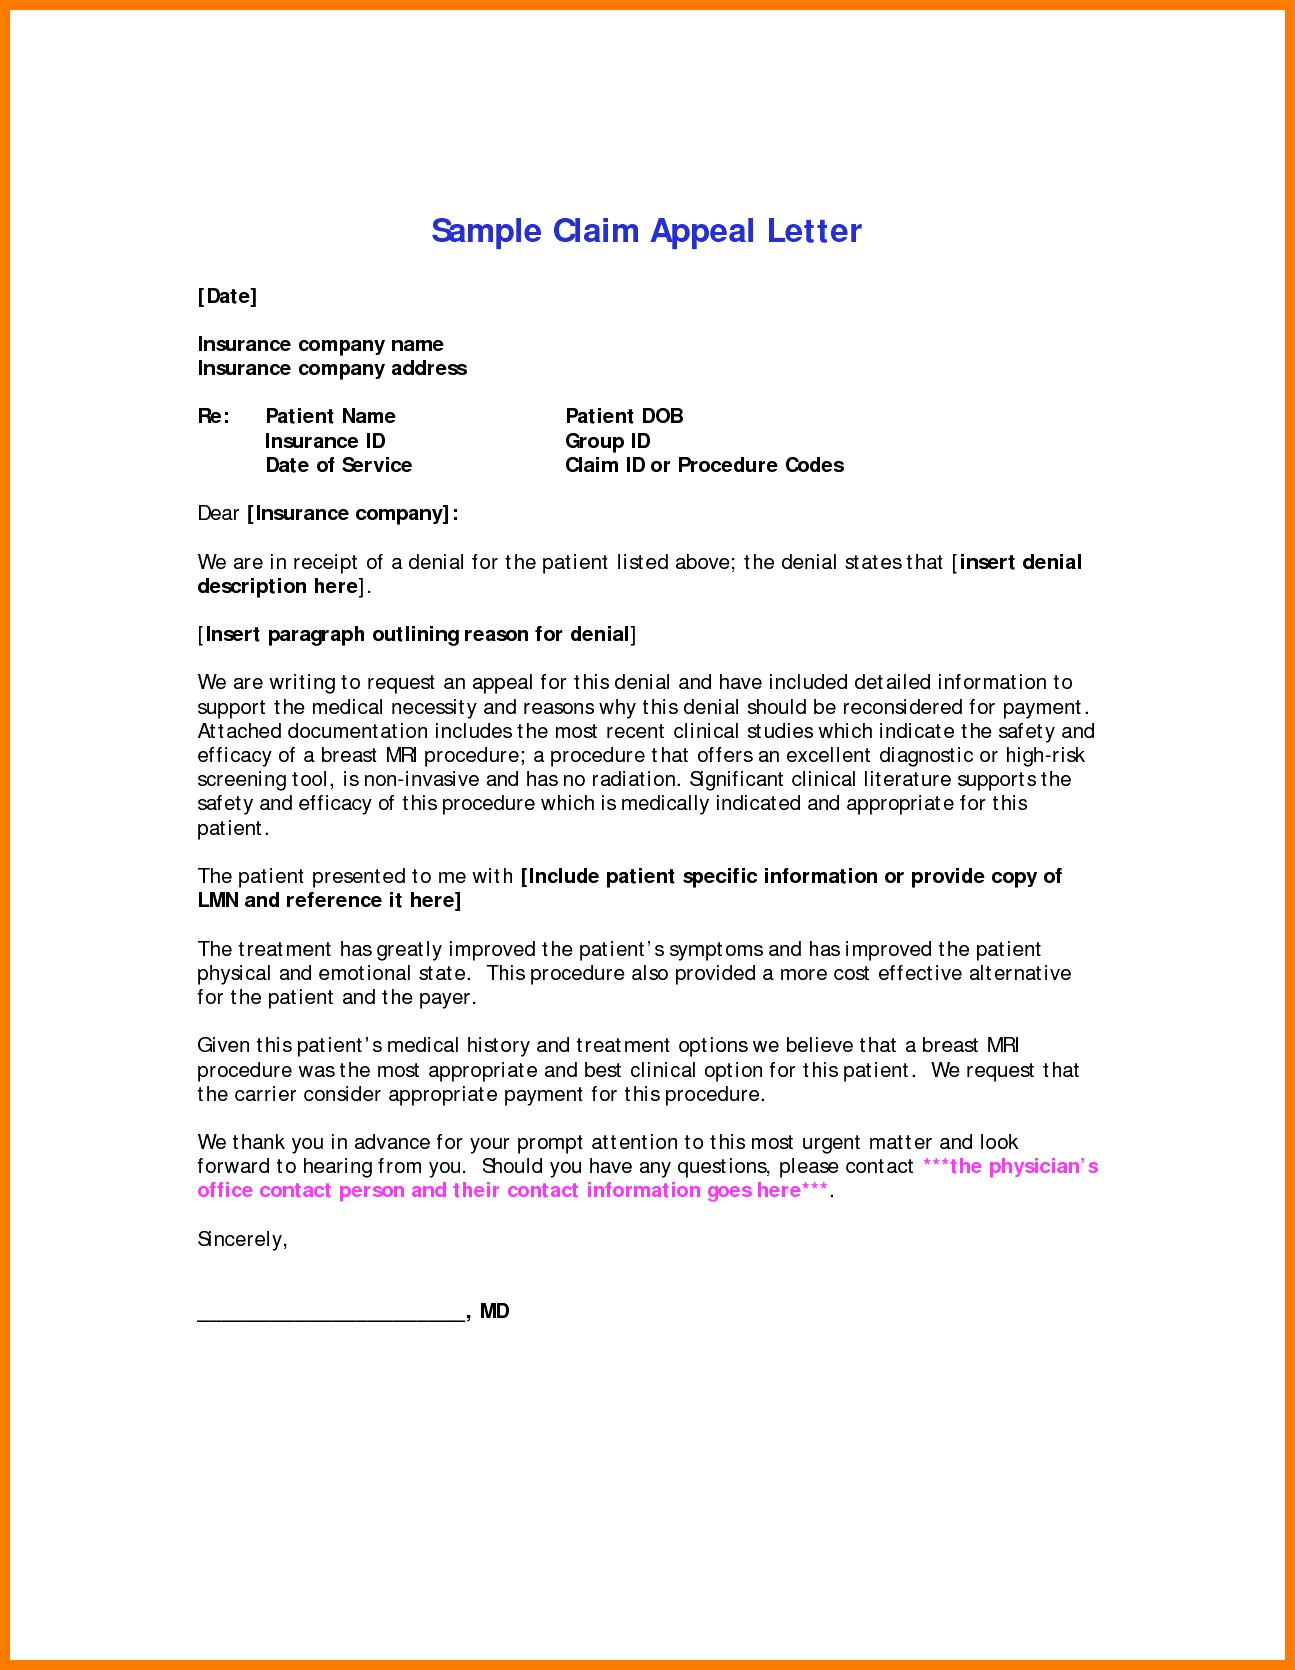 medical claim appeal letter template Collection-Request Letter format for Medical Reimbursement New Appeal Letter Template Medical Vgmb 5-l